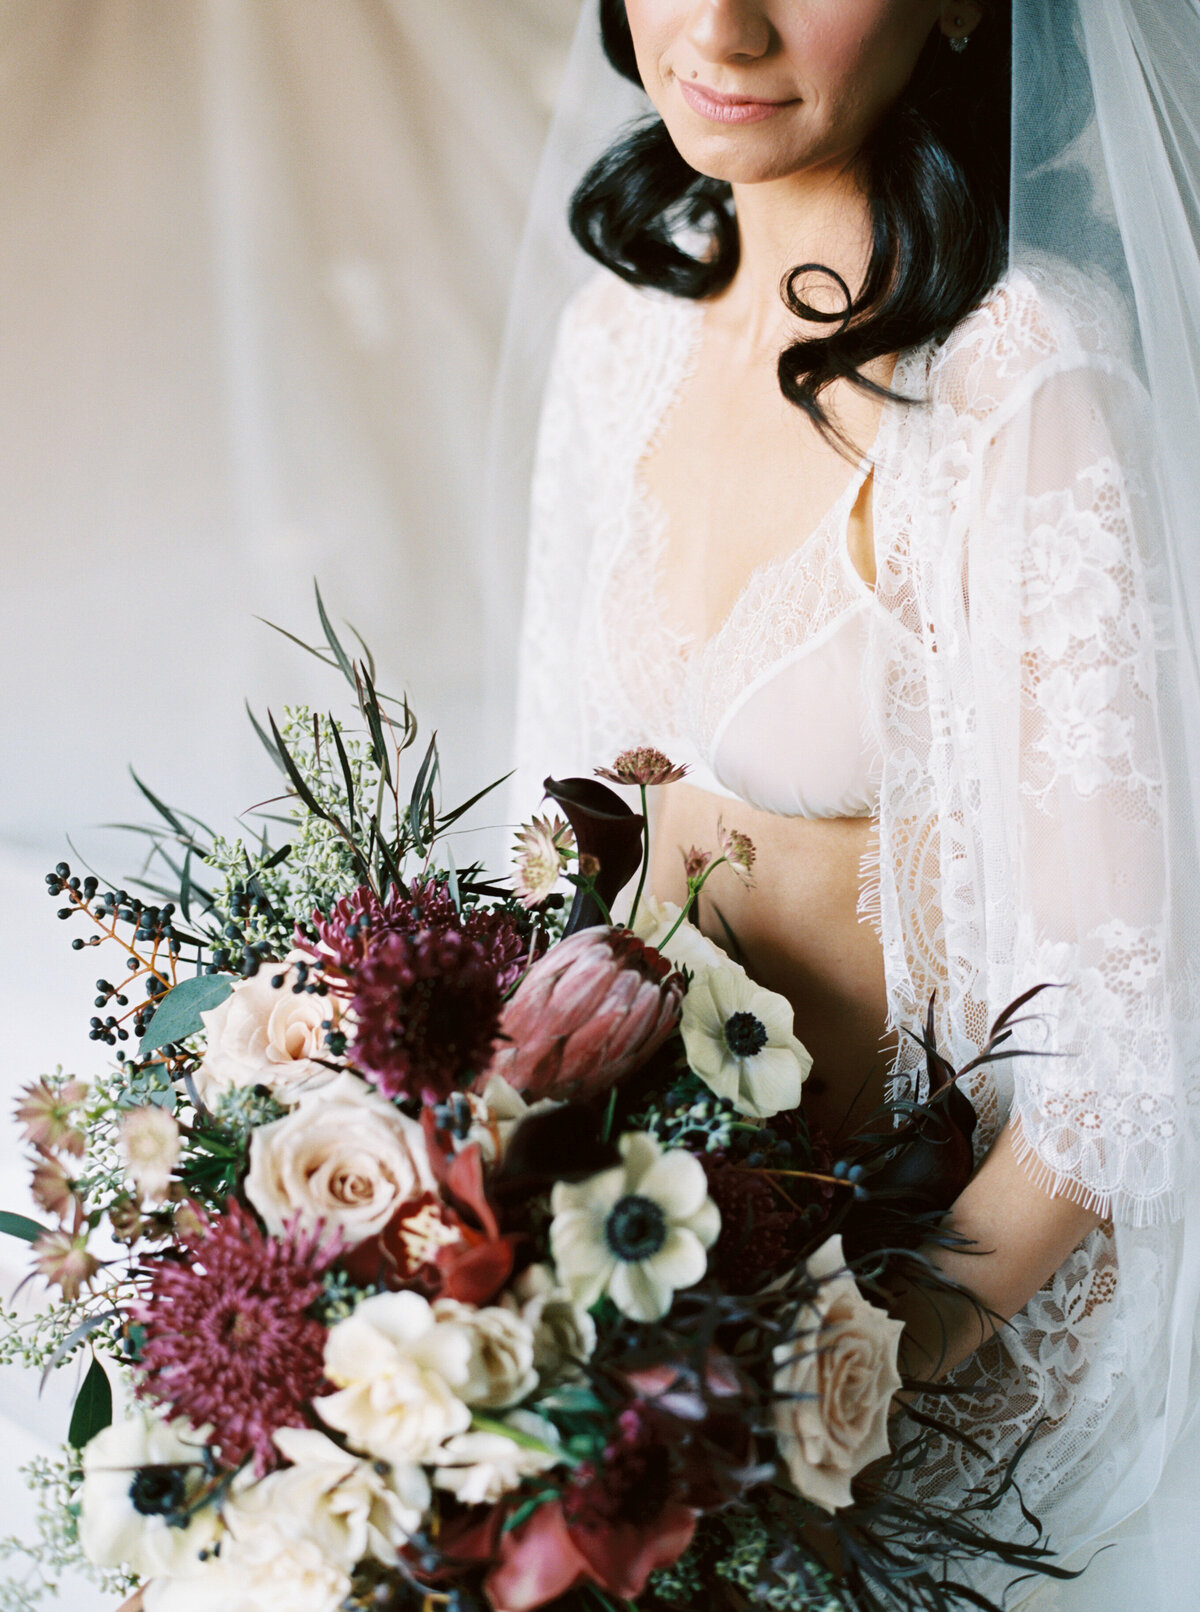 Kaylea Moreno_wedding gallery - Rami-Cassandra-Wedding-krmorenophoto-57